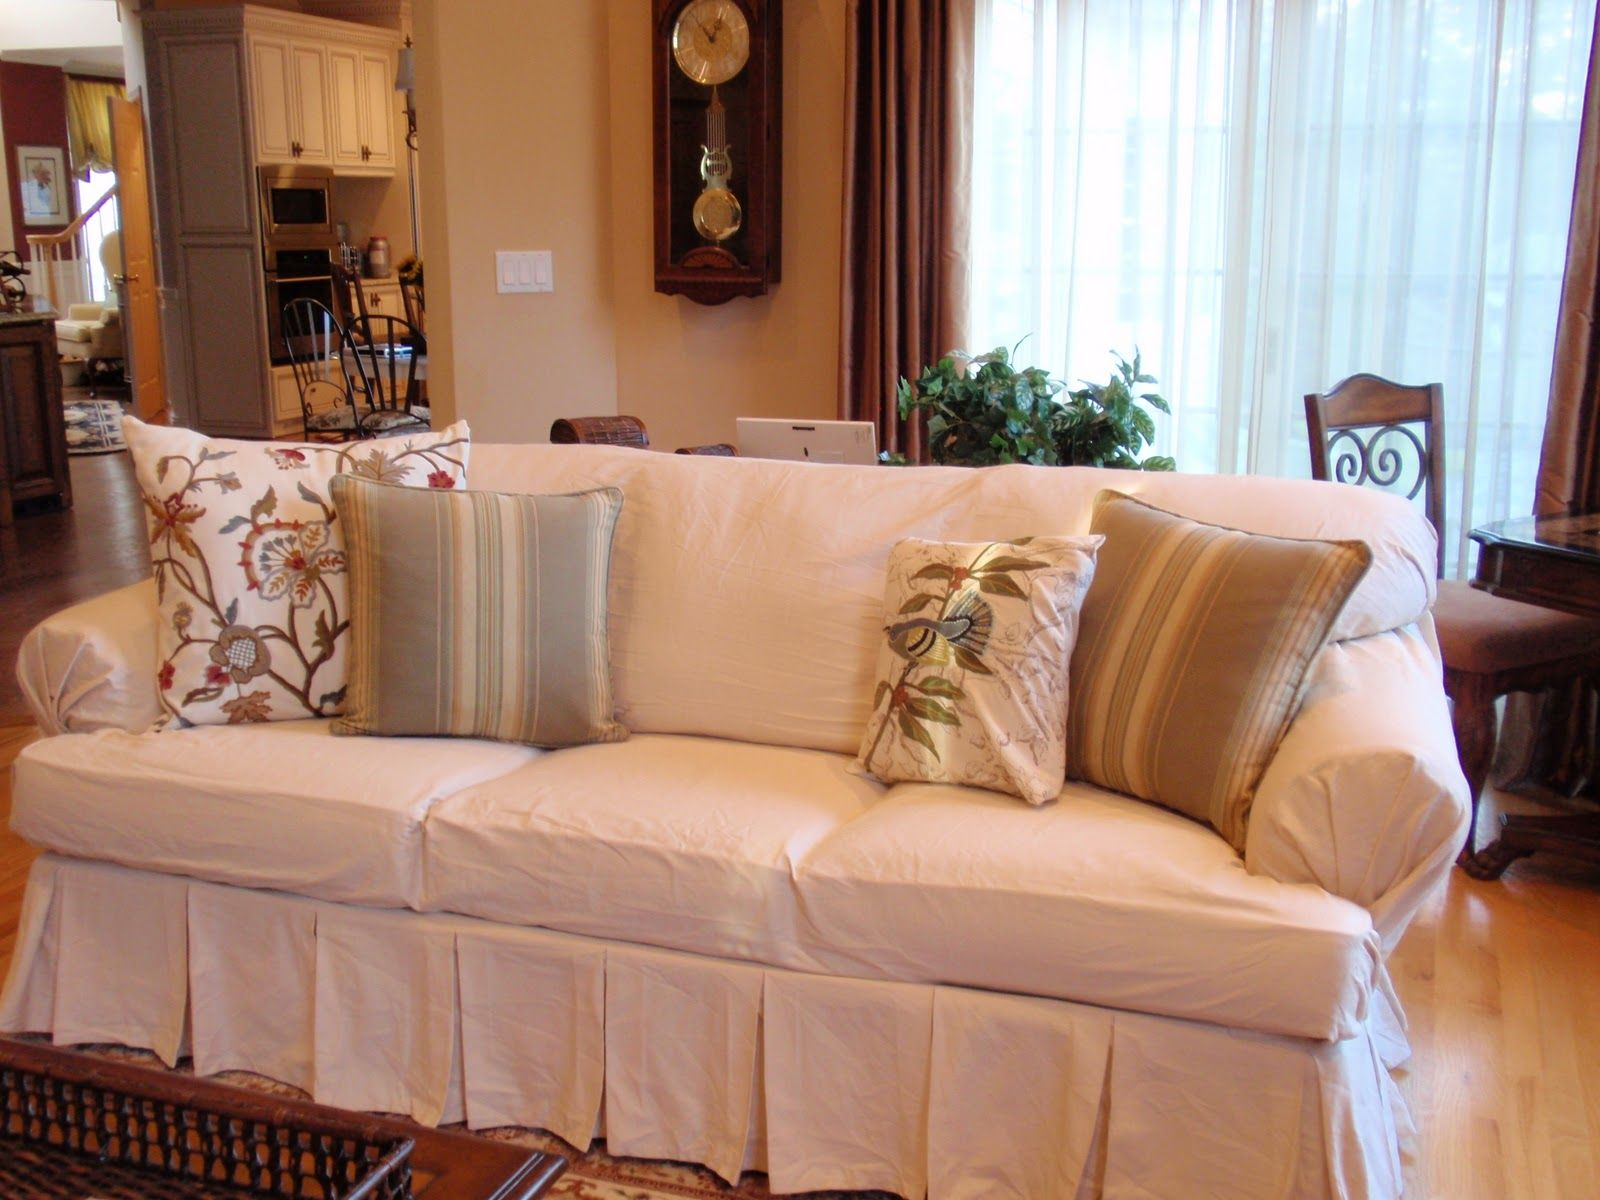 Sure Fit Slipcovers Matelasse Damask One Piece T Cushion   Sofa T Cushion | Living  Room | Pinterest | Damasks, Living Rooms And Sunroom Part 50